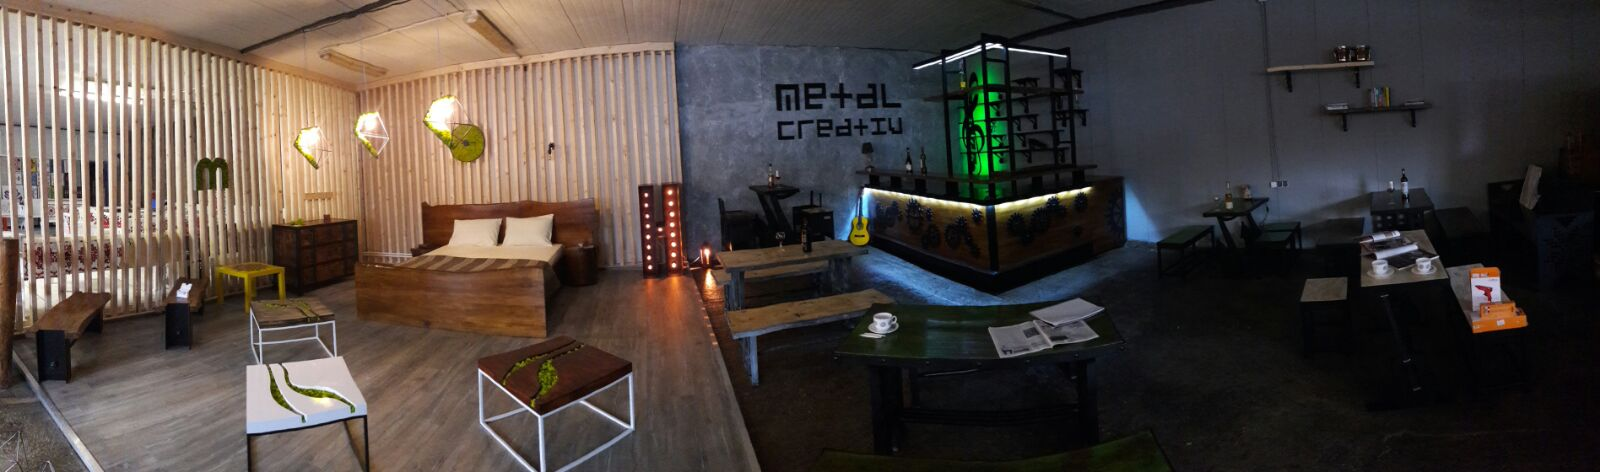 Showroom Metal Creativ